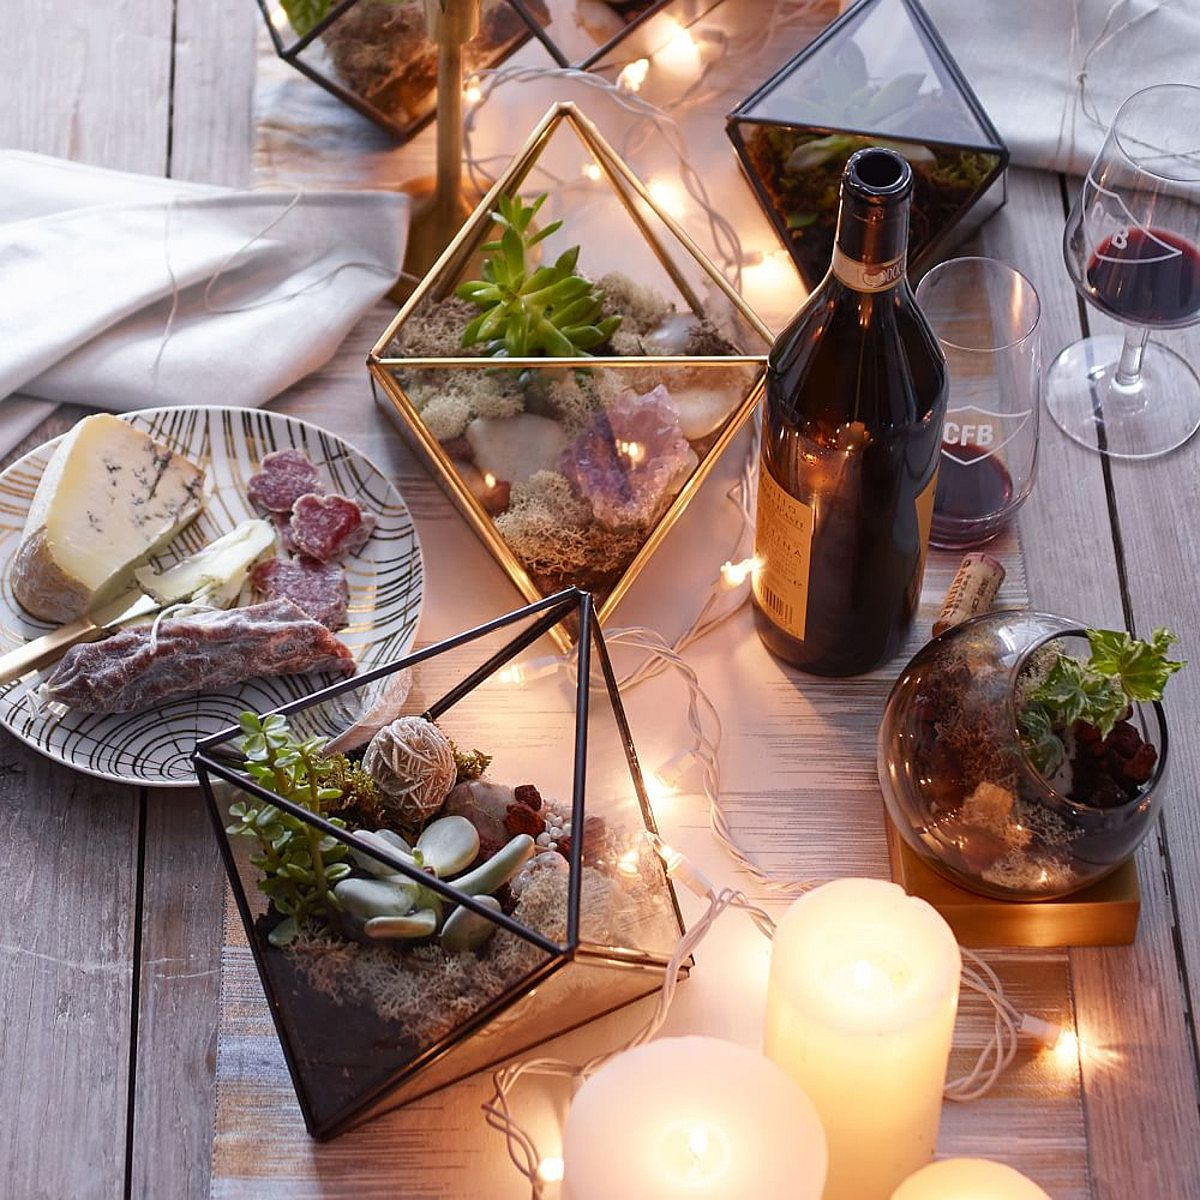 Faceted geo terrariums from West Elm